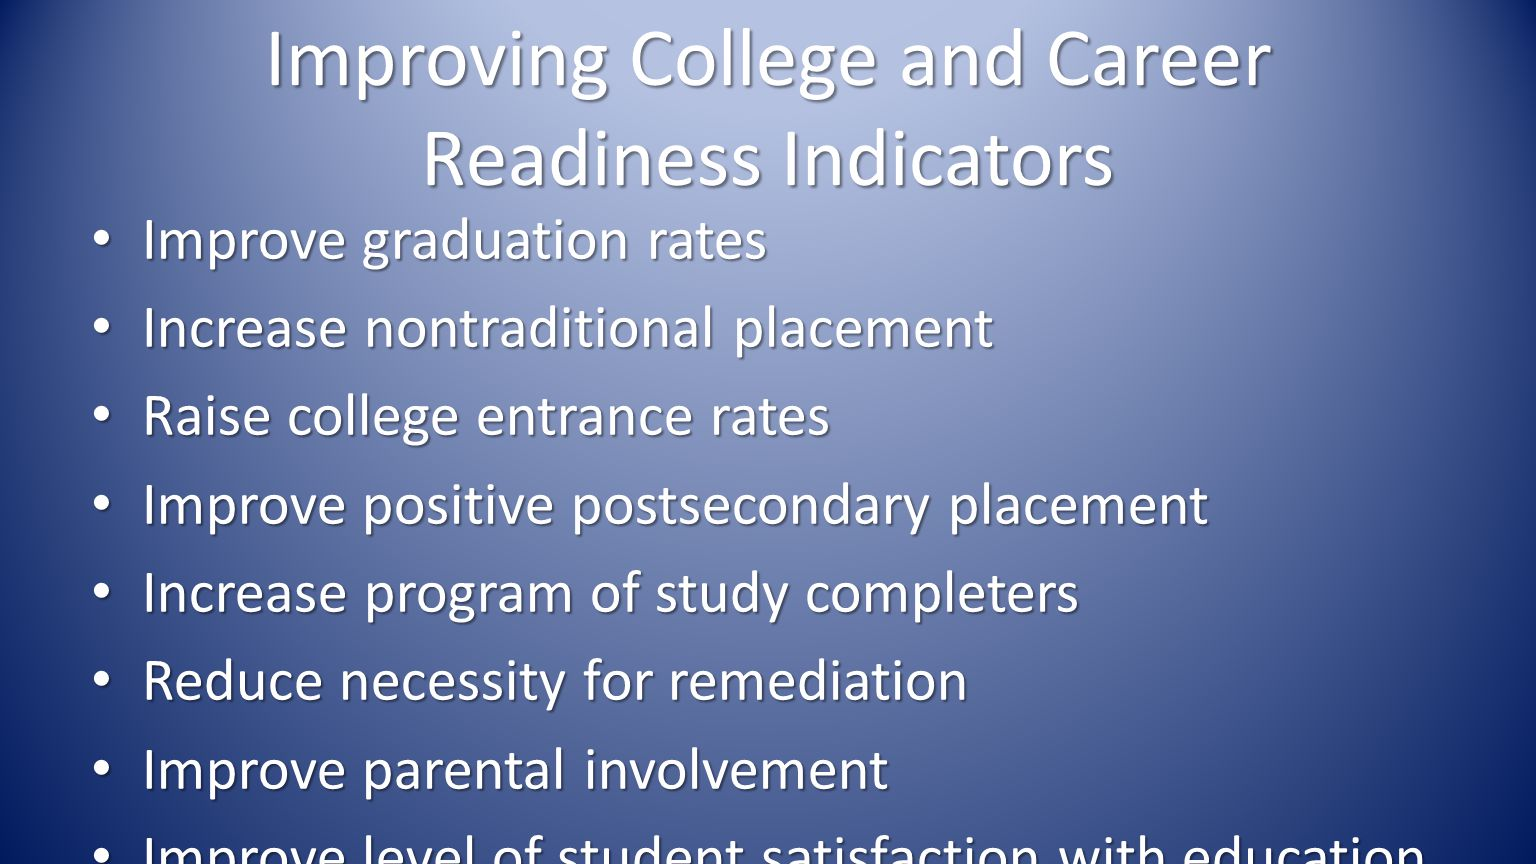 Improving College and Career Readiness Indicators Improve graduation rates Improve graduation rates Increase nontraditional placement Increase nontraditional placement Raise college entrance rates Raise college entrance rates Improve positive postsecondary placement Improve positive postsecondary placement Increase program of study completers Increase program of study completers Reduce necessity for remediation Reduce necessity for remediation Improve parental involvement Improve parental involvement Improve level of student satisfaction with education Improve level of student satisfaction with education